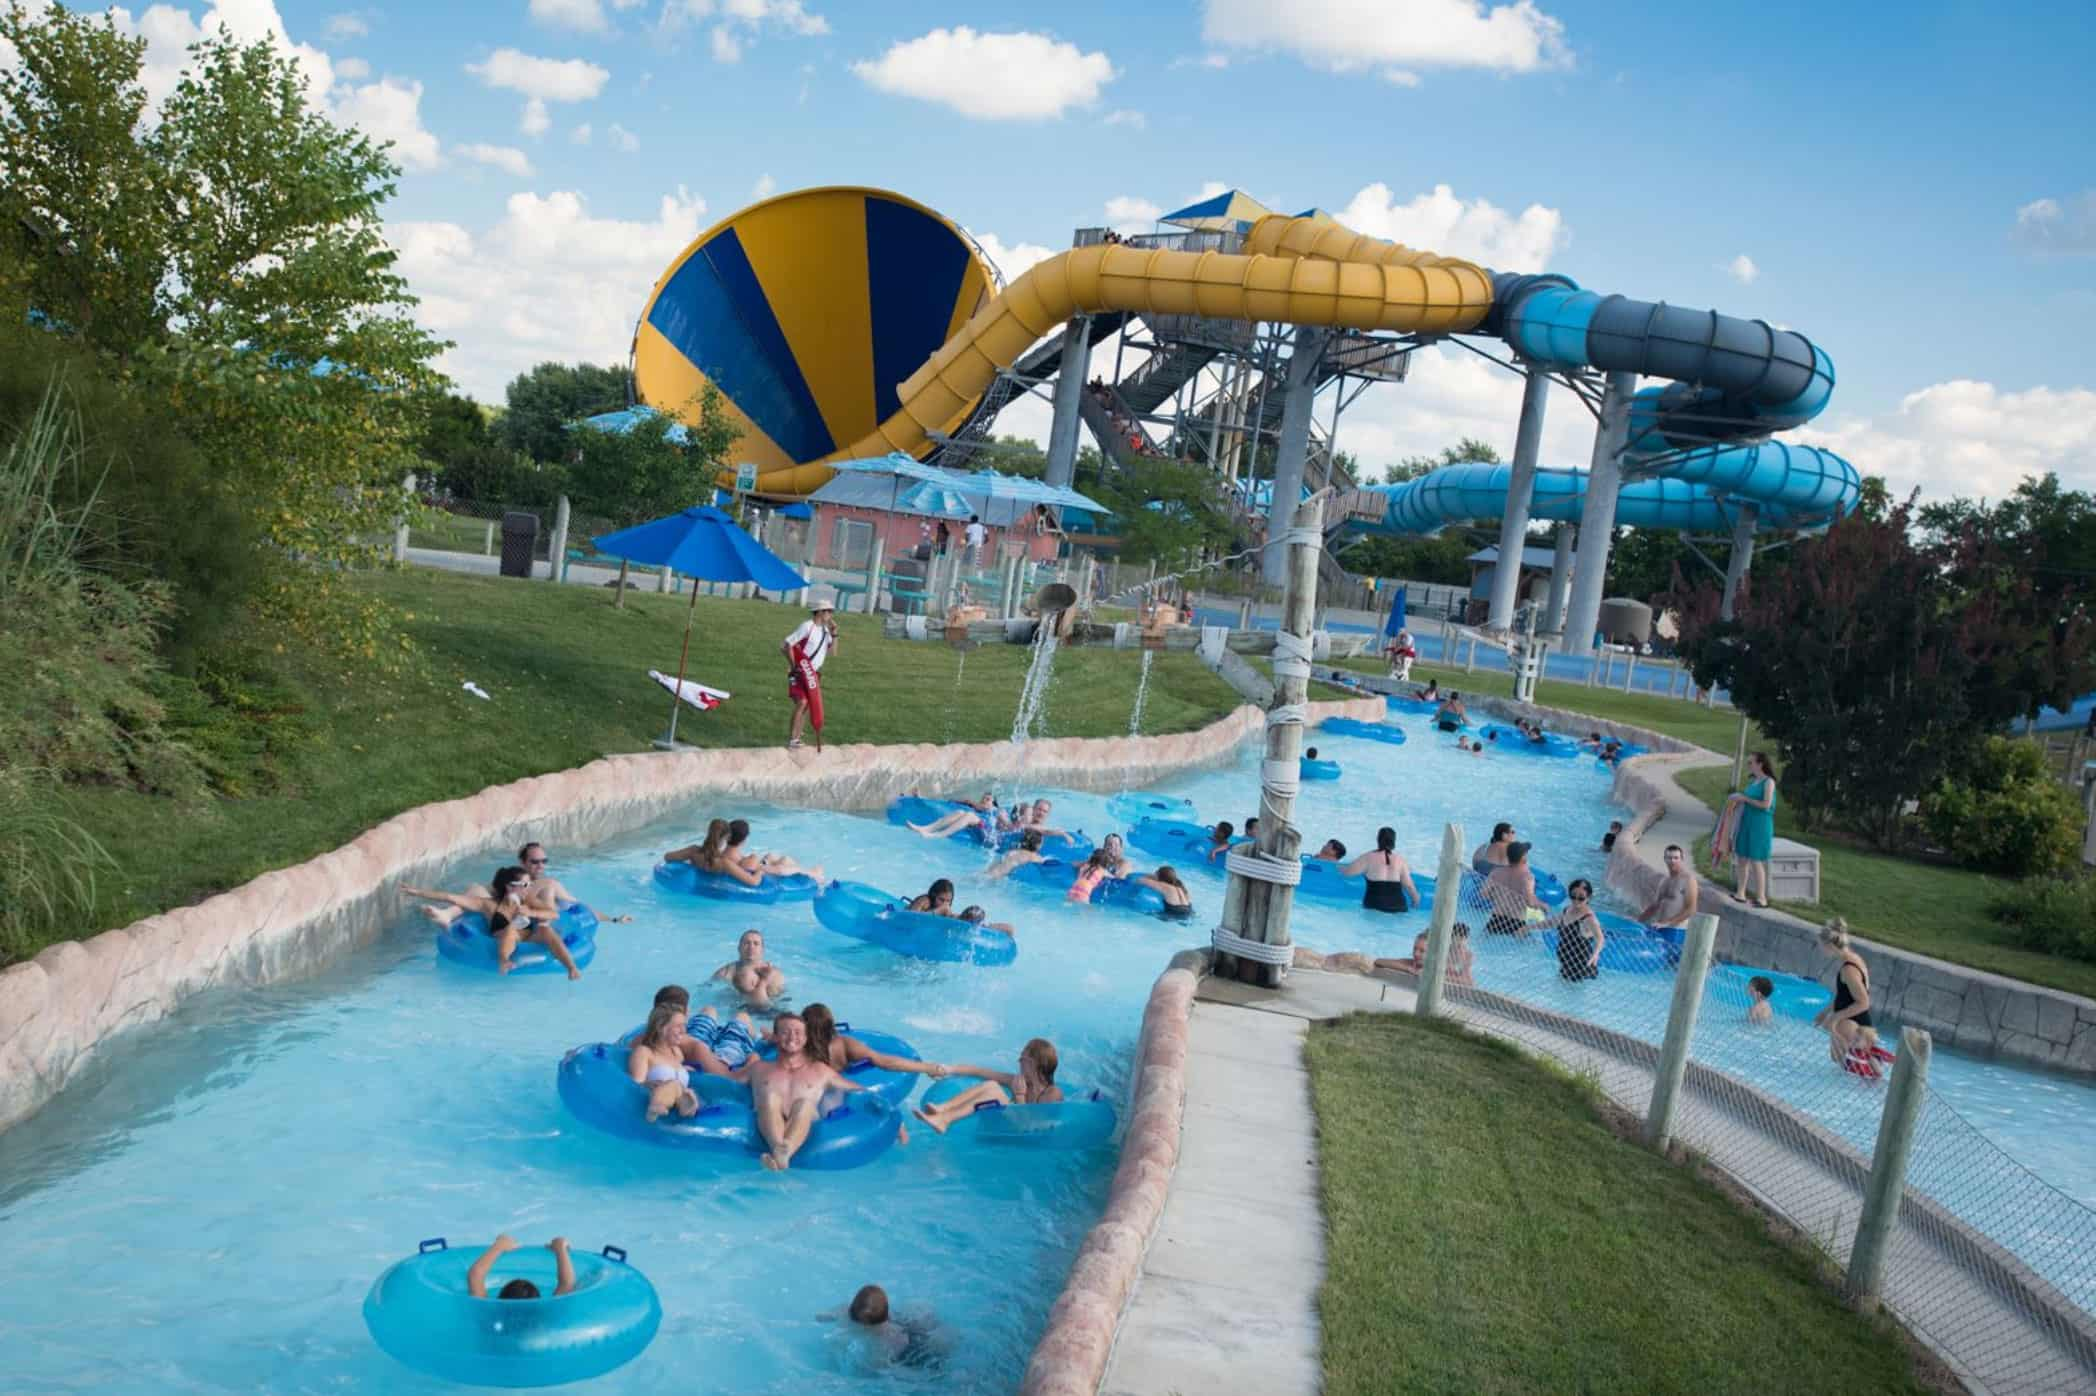 The Hiawatha Water Park